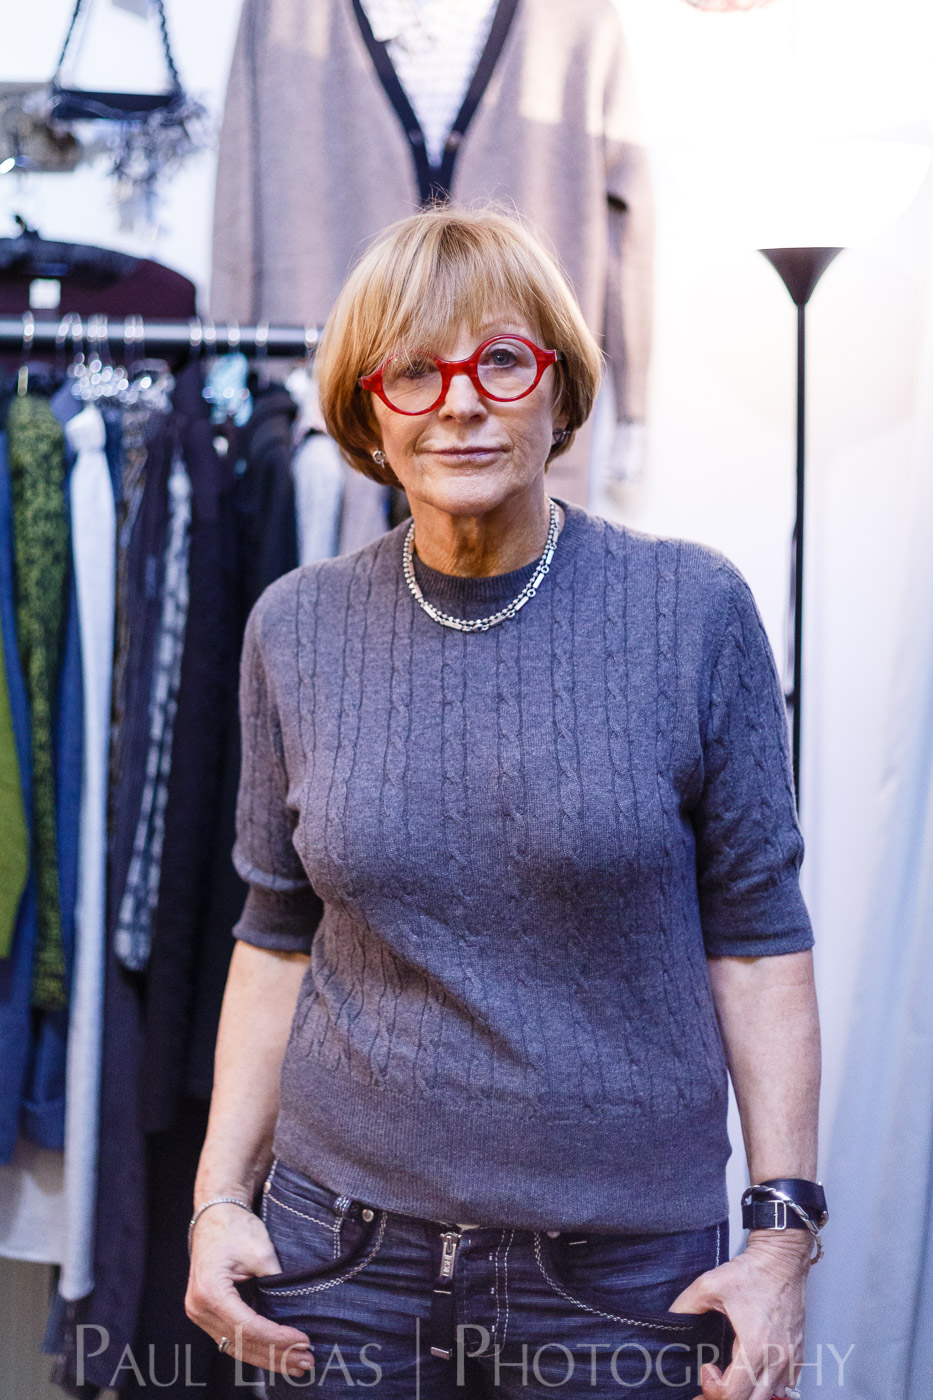 Anne Robinson portrait photographer photography, Ceci Paolo, Ledbury, Herefordshire 5388